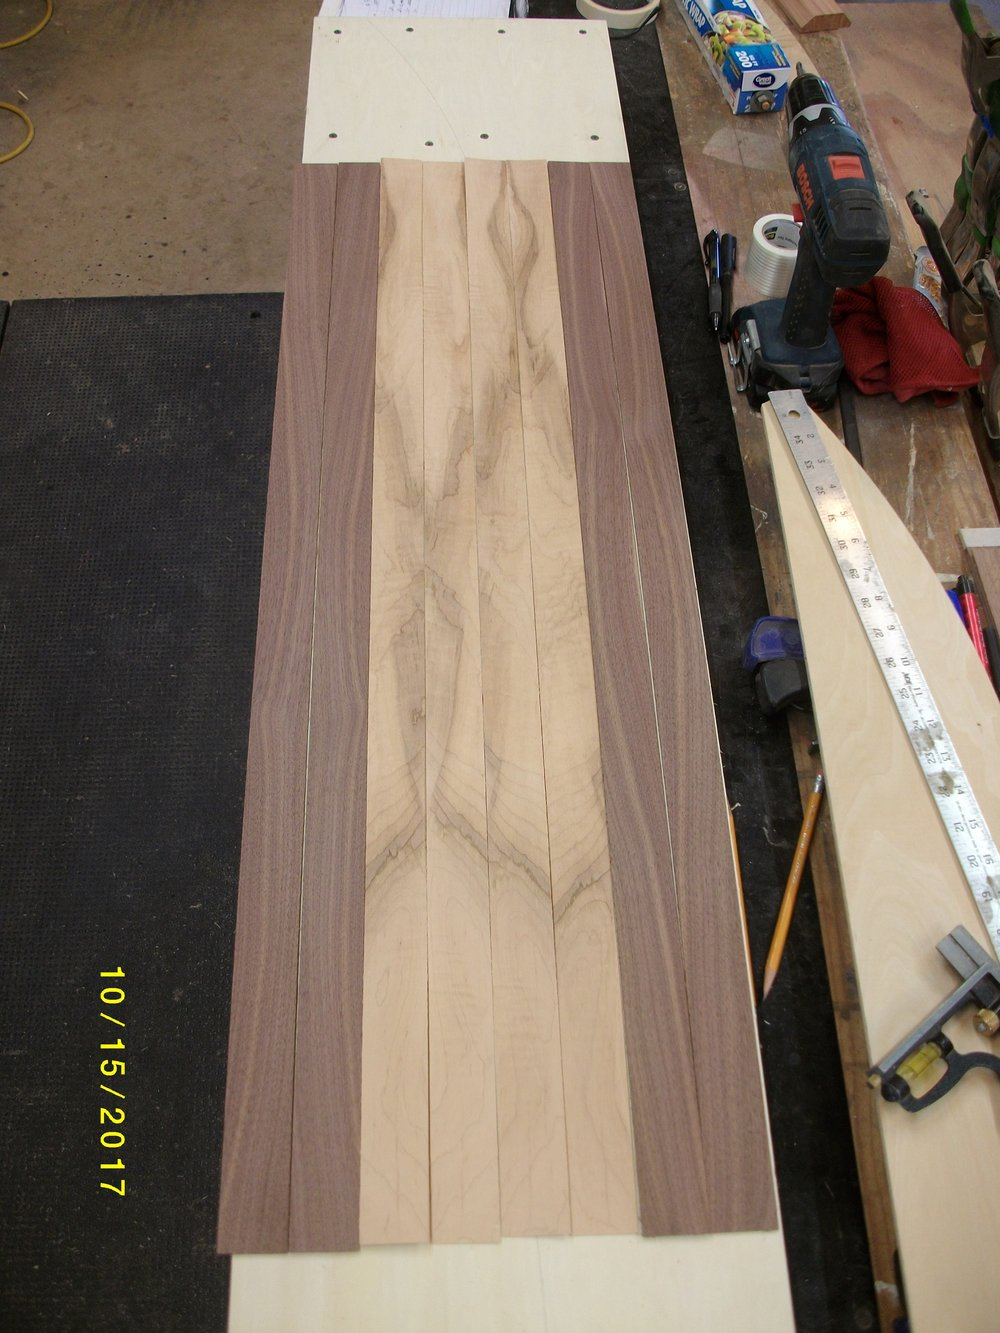 First the lams, some walnut tapers for the core and some ambrosia curly maple veneers.